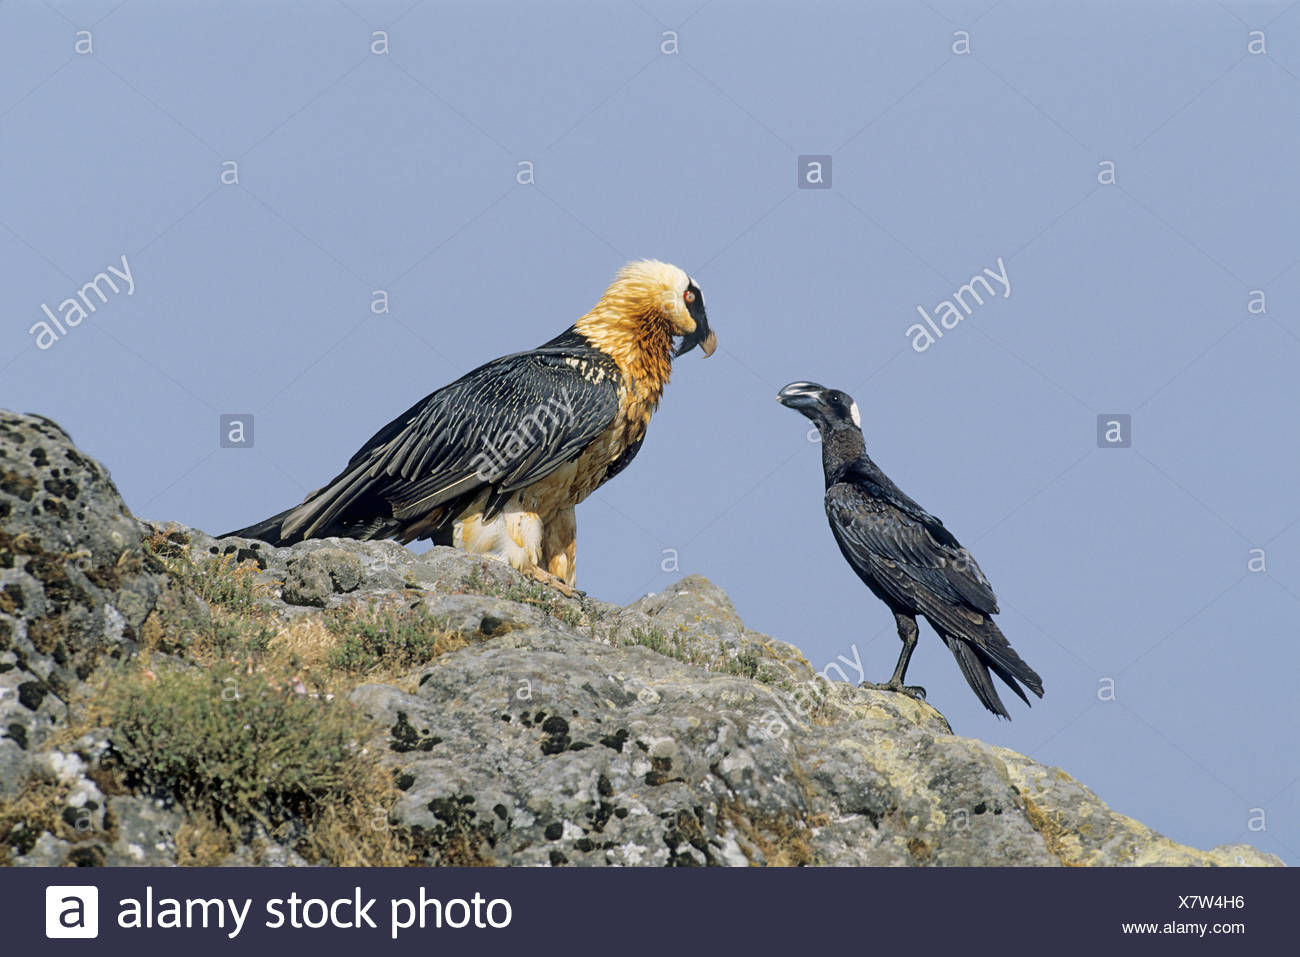 Thick-billed Raven and Bearded Vulture - Stock Image